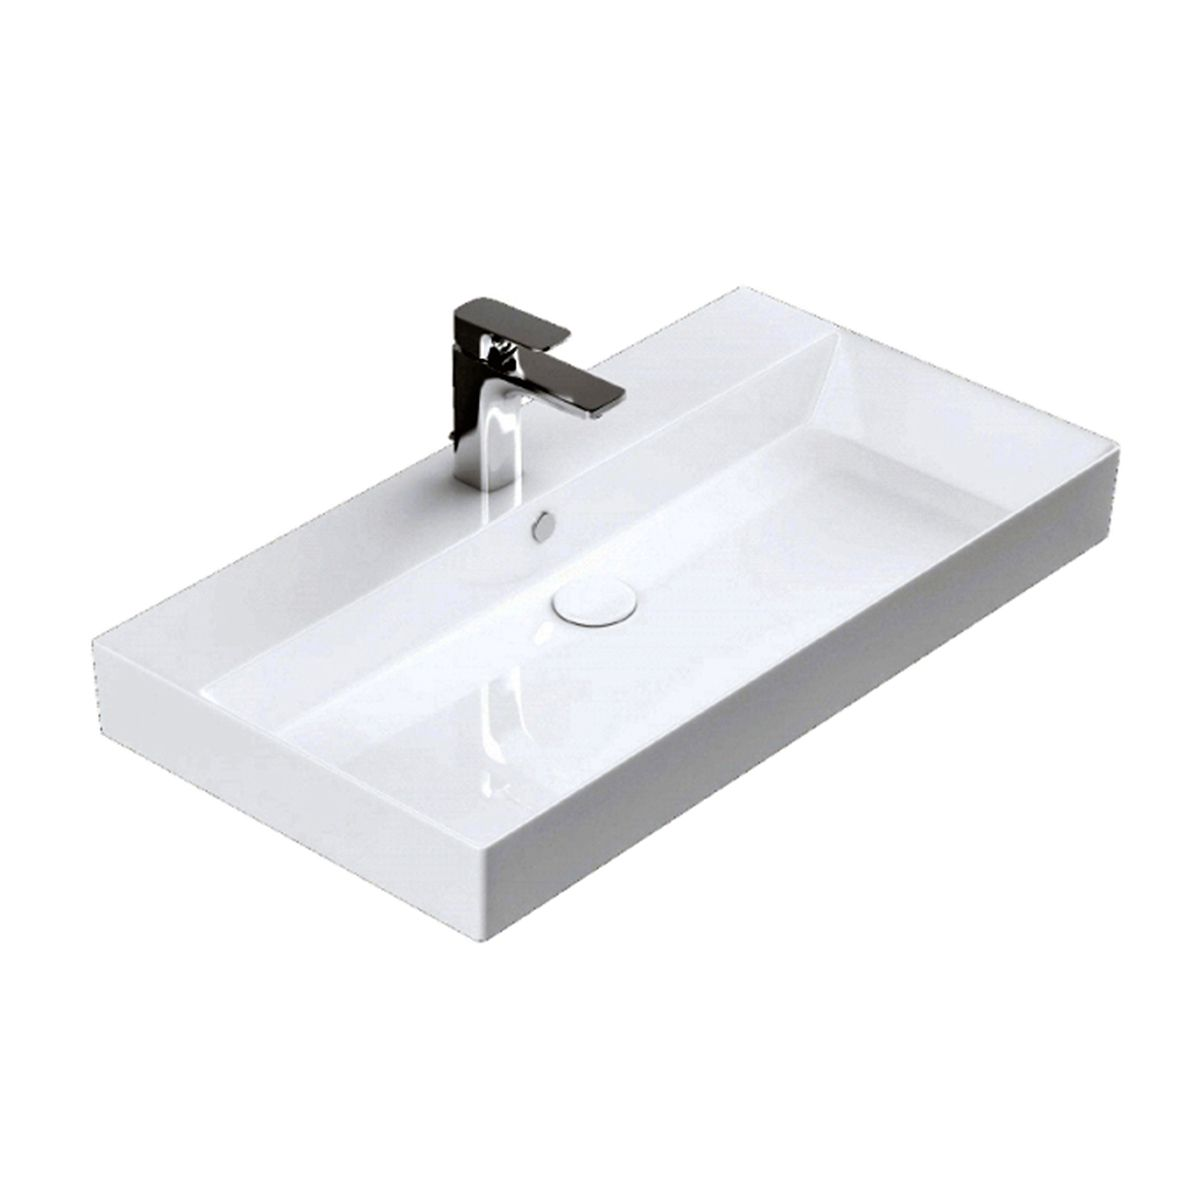 energy 85 ada compliant wall mounted bathroom sink in ceramic white 33 5